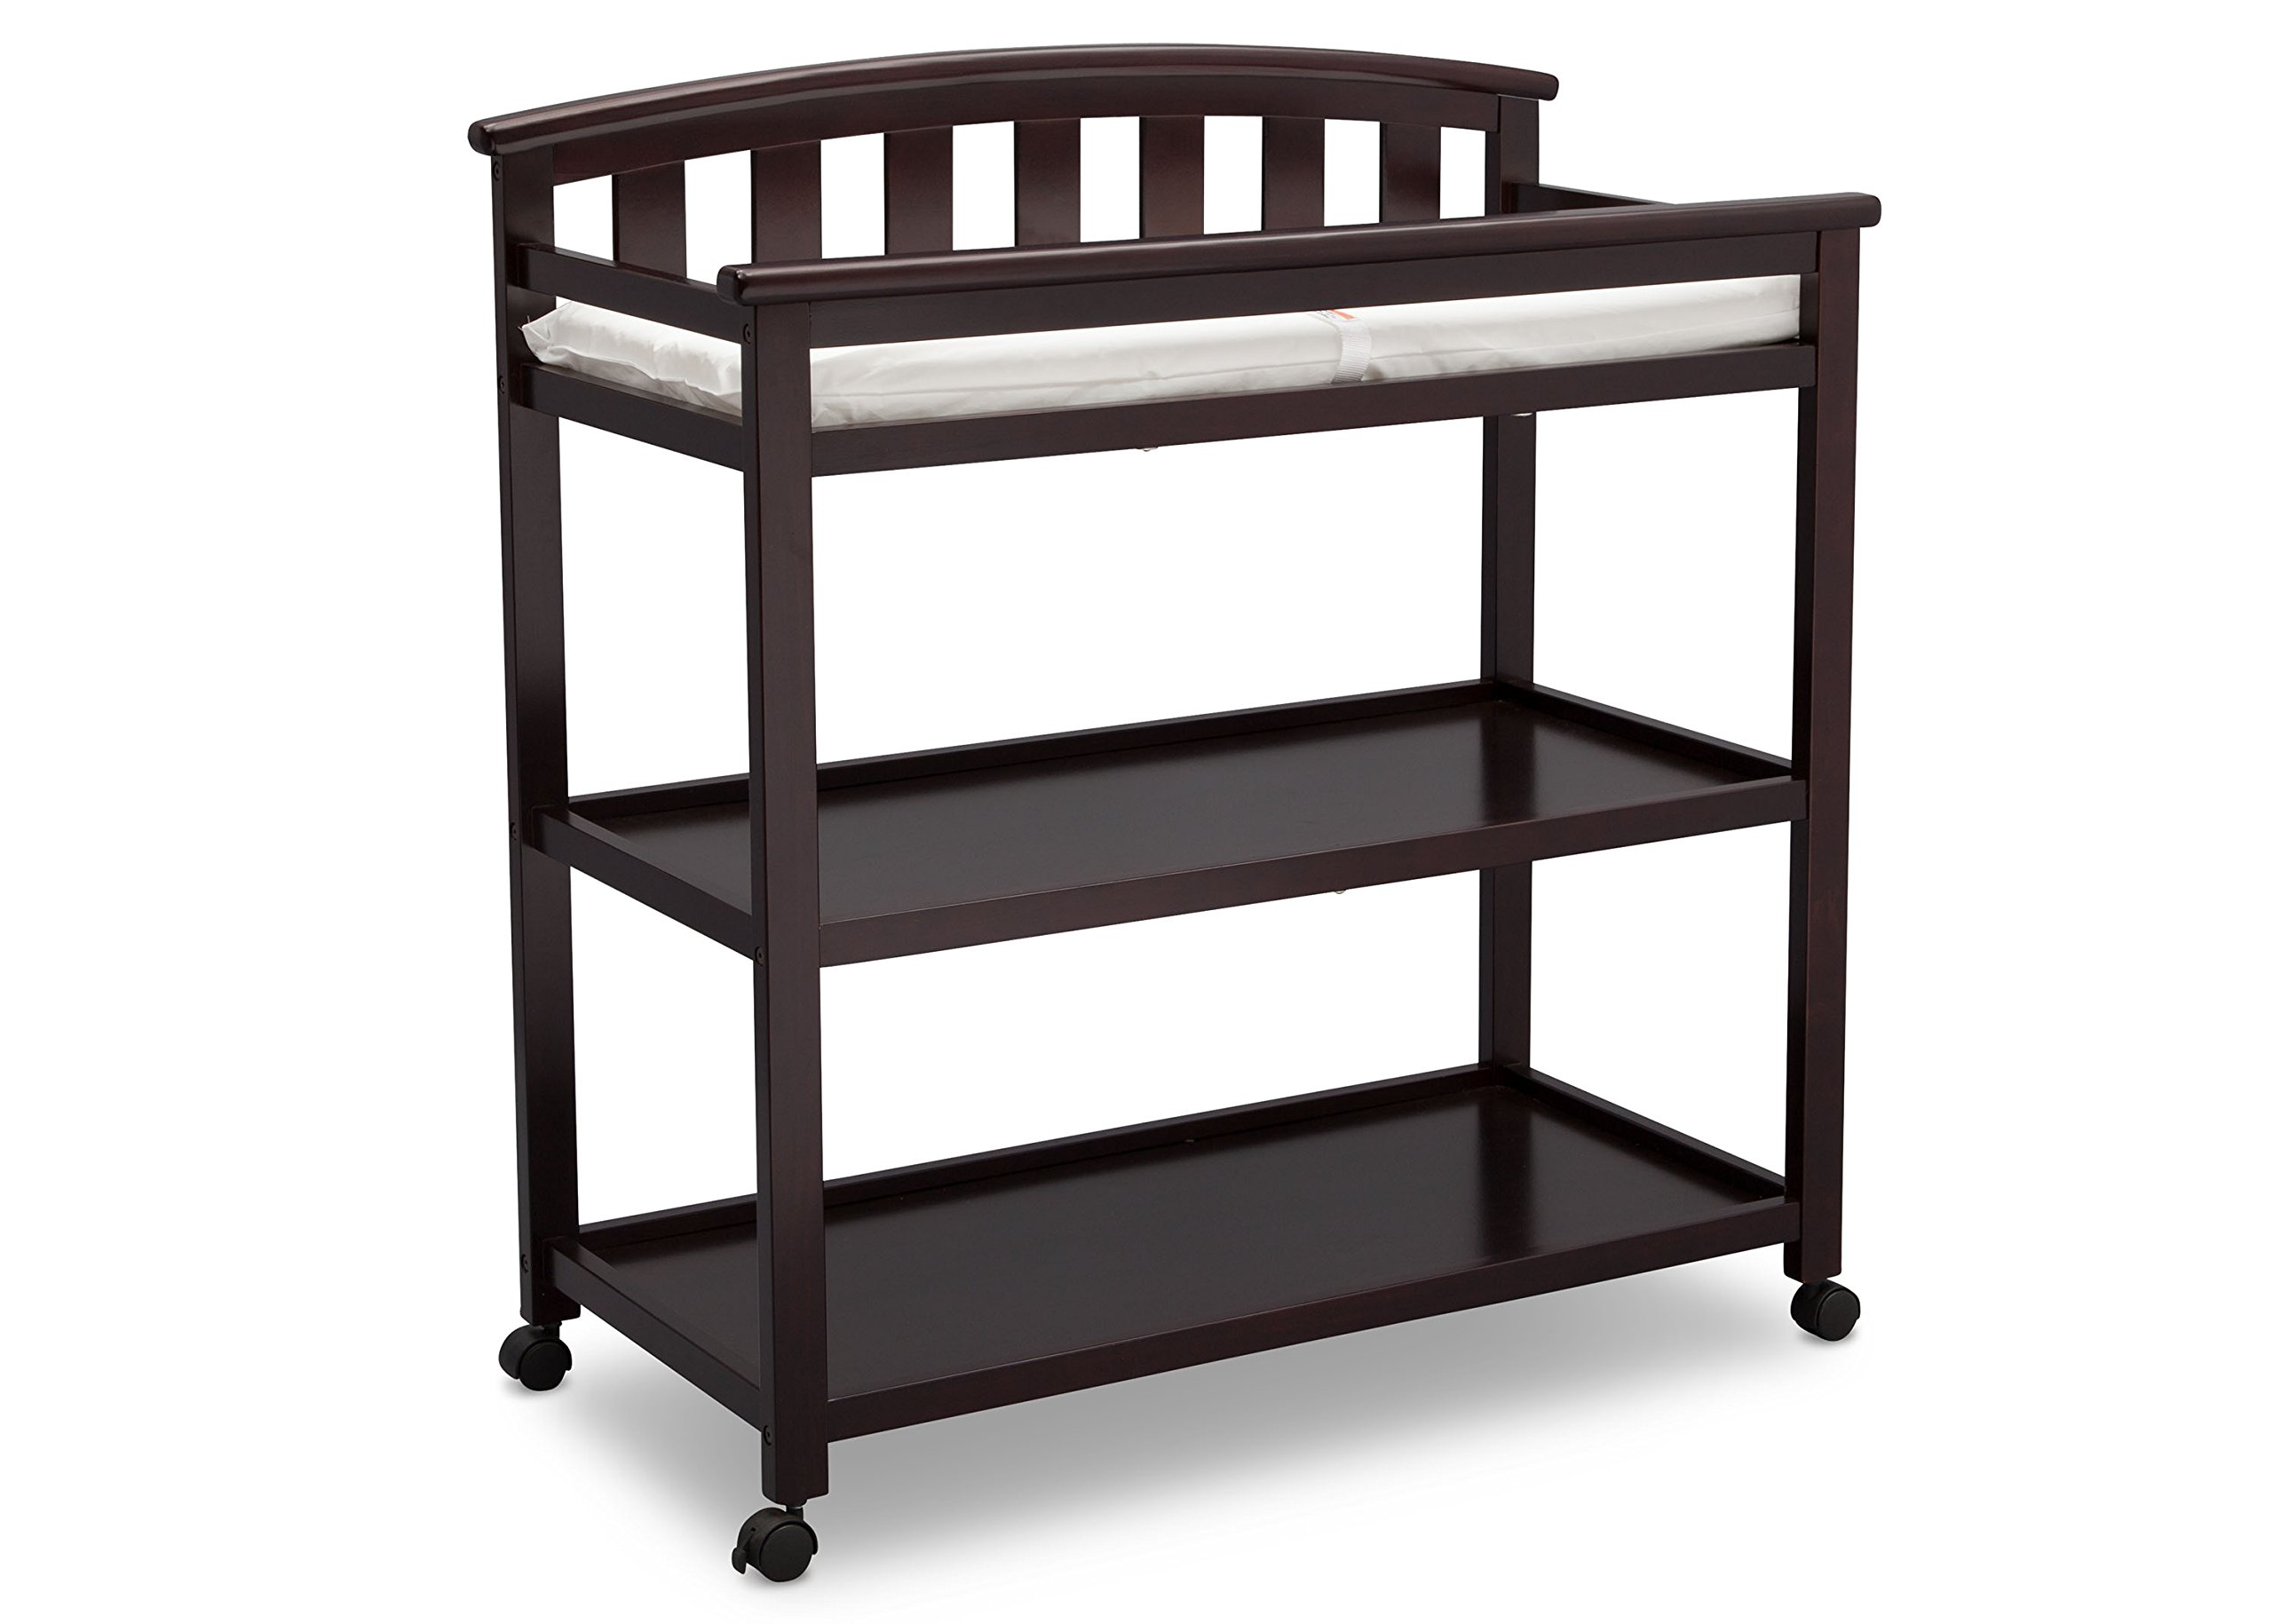 Delta Children Arch Top Changing Table with Casters, Dark Chocolate by Delta Children